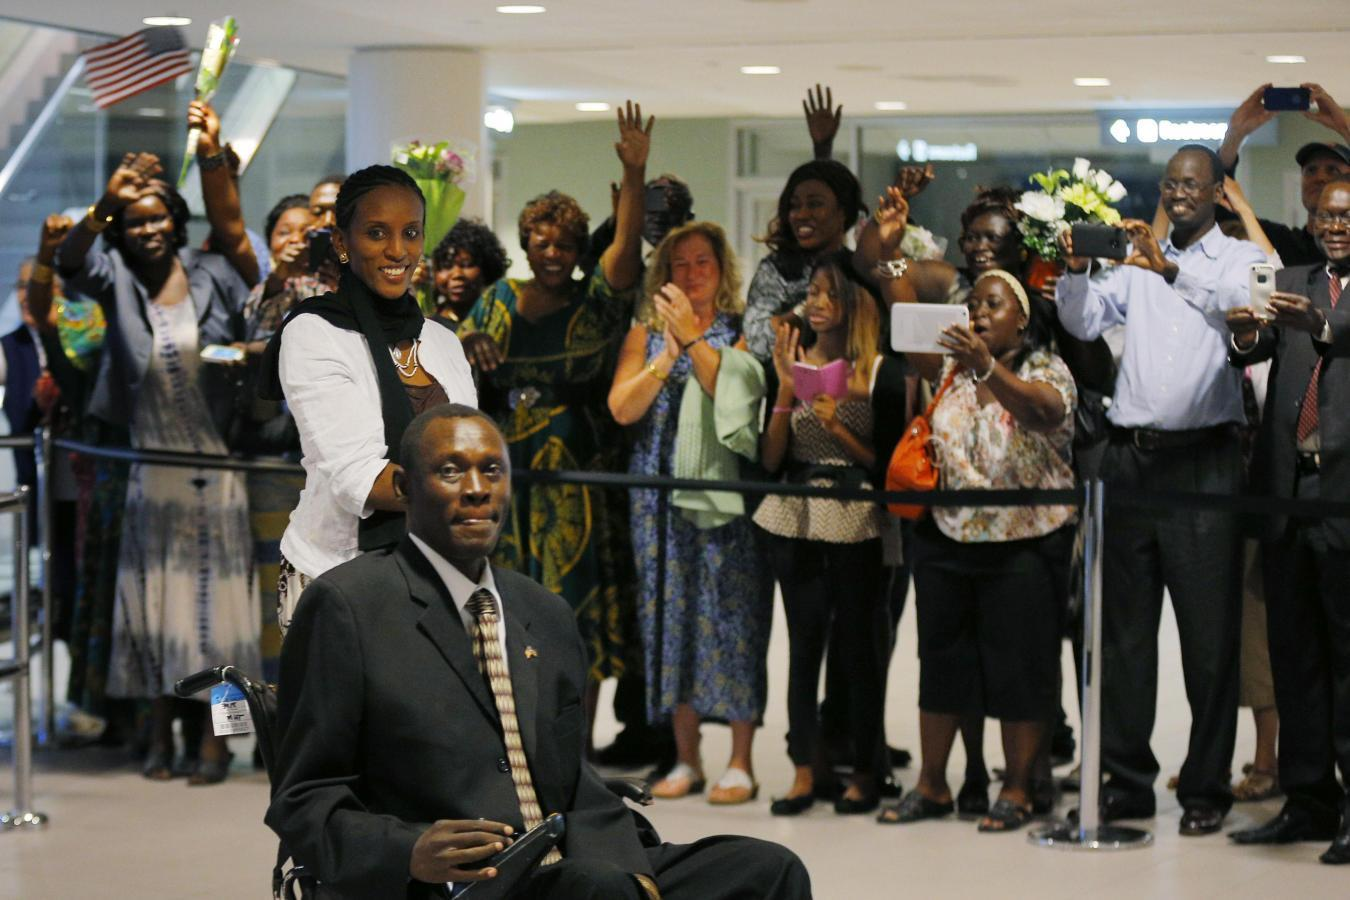 Sudanese woman who had faced execution for conversion arrives in U.S.